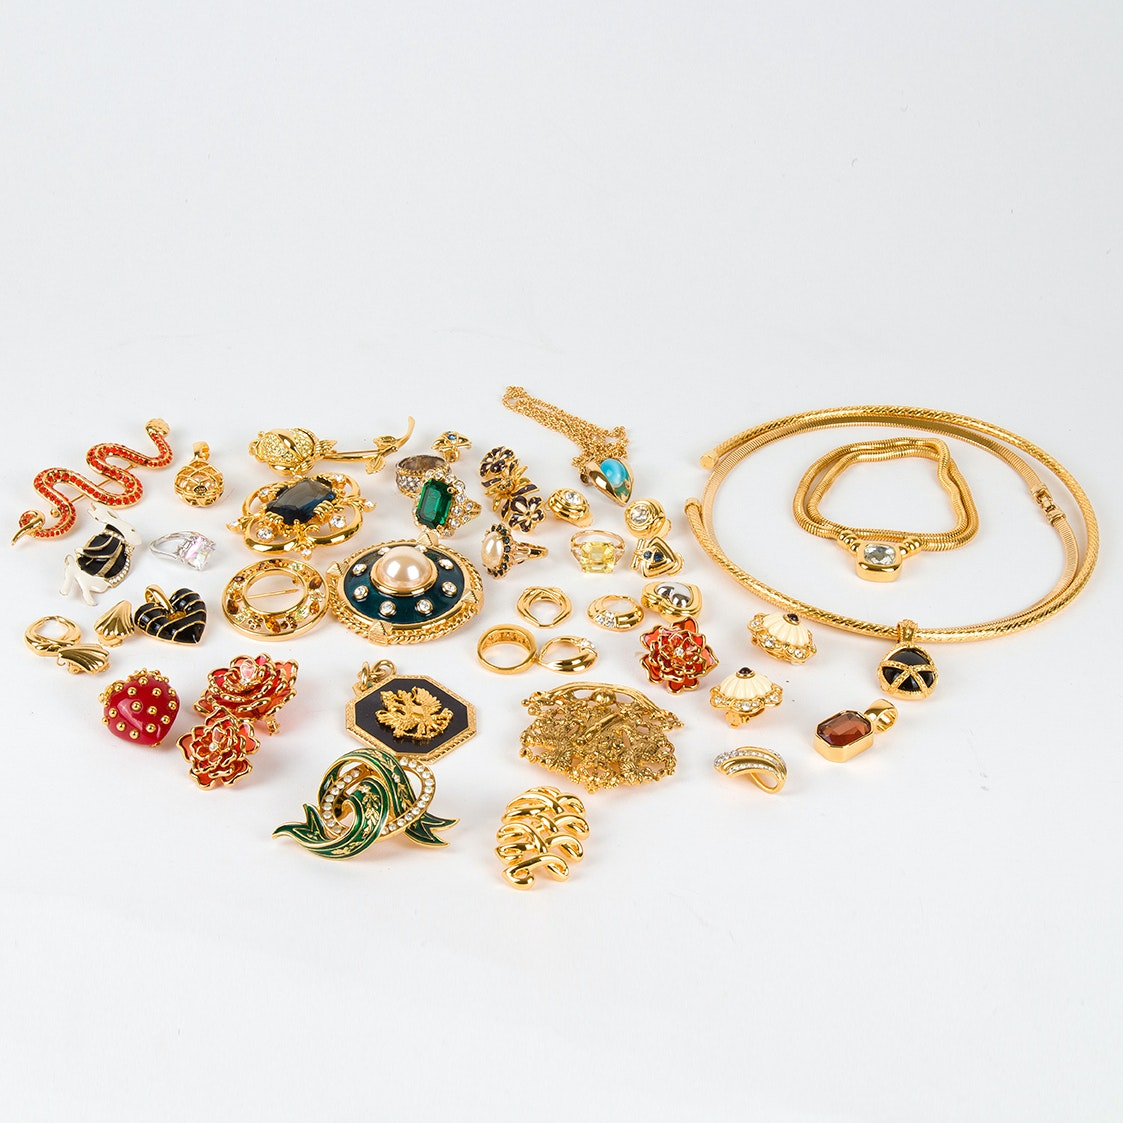 Gold Tone Jewelry Featuring Designer Kenneth Jay Lane and Joan Rivers